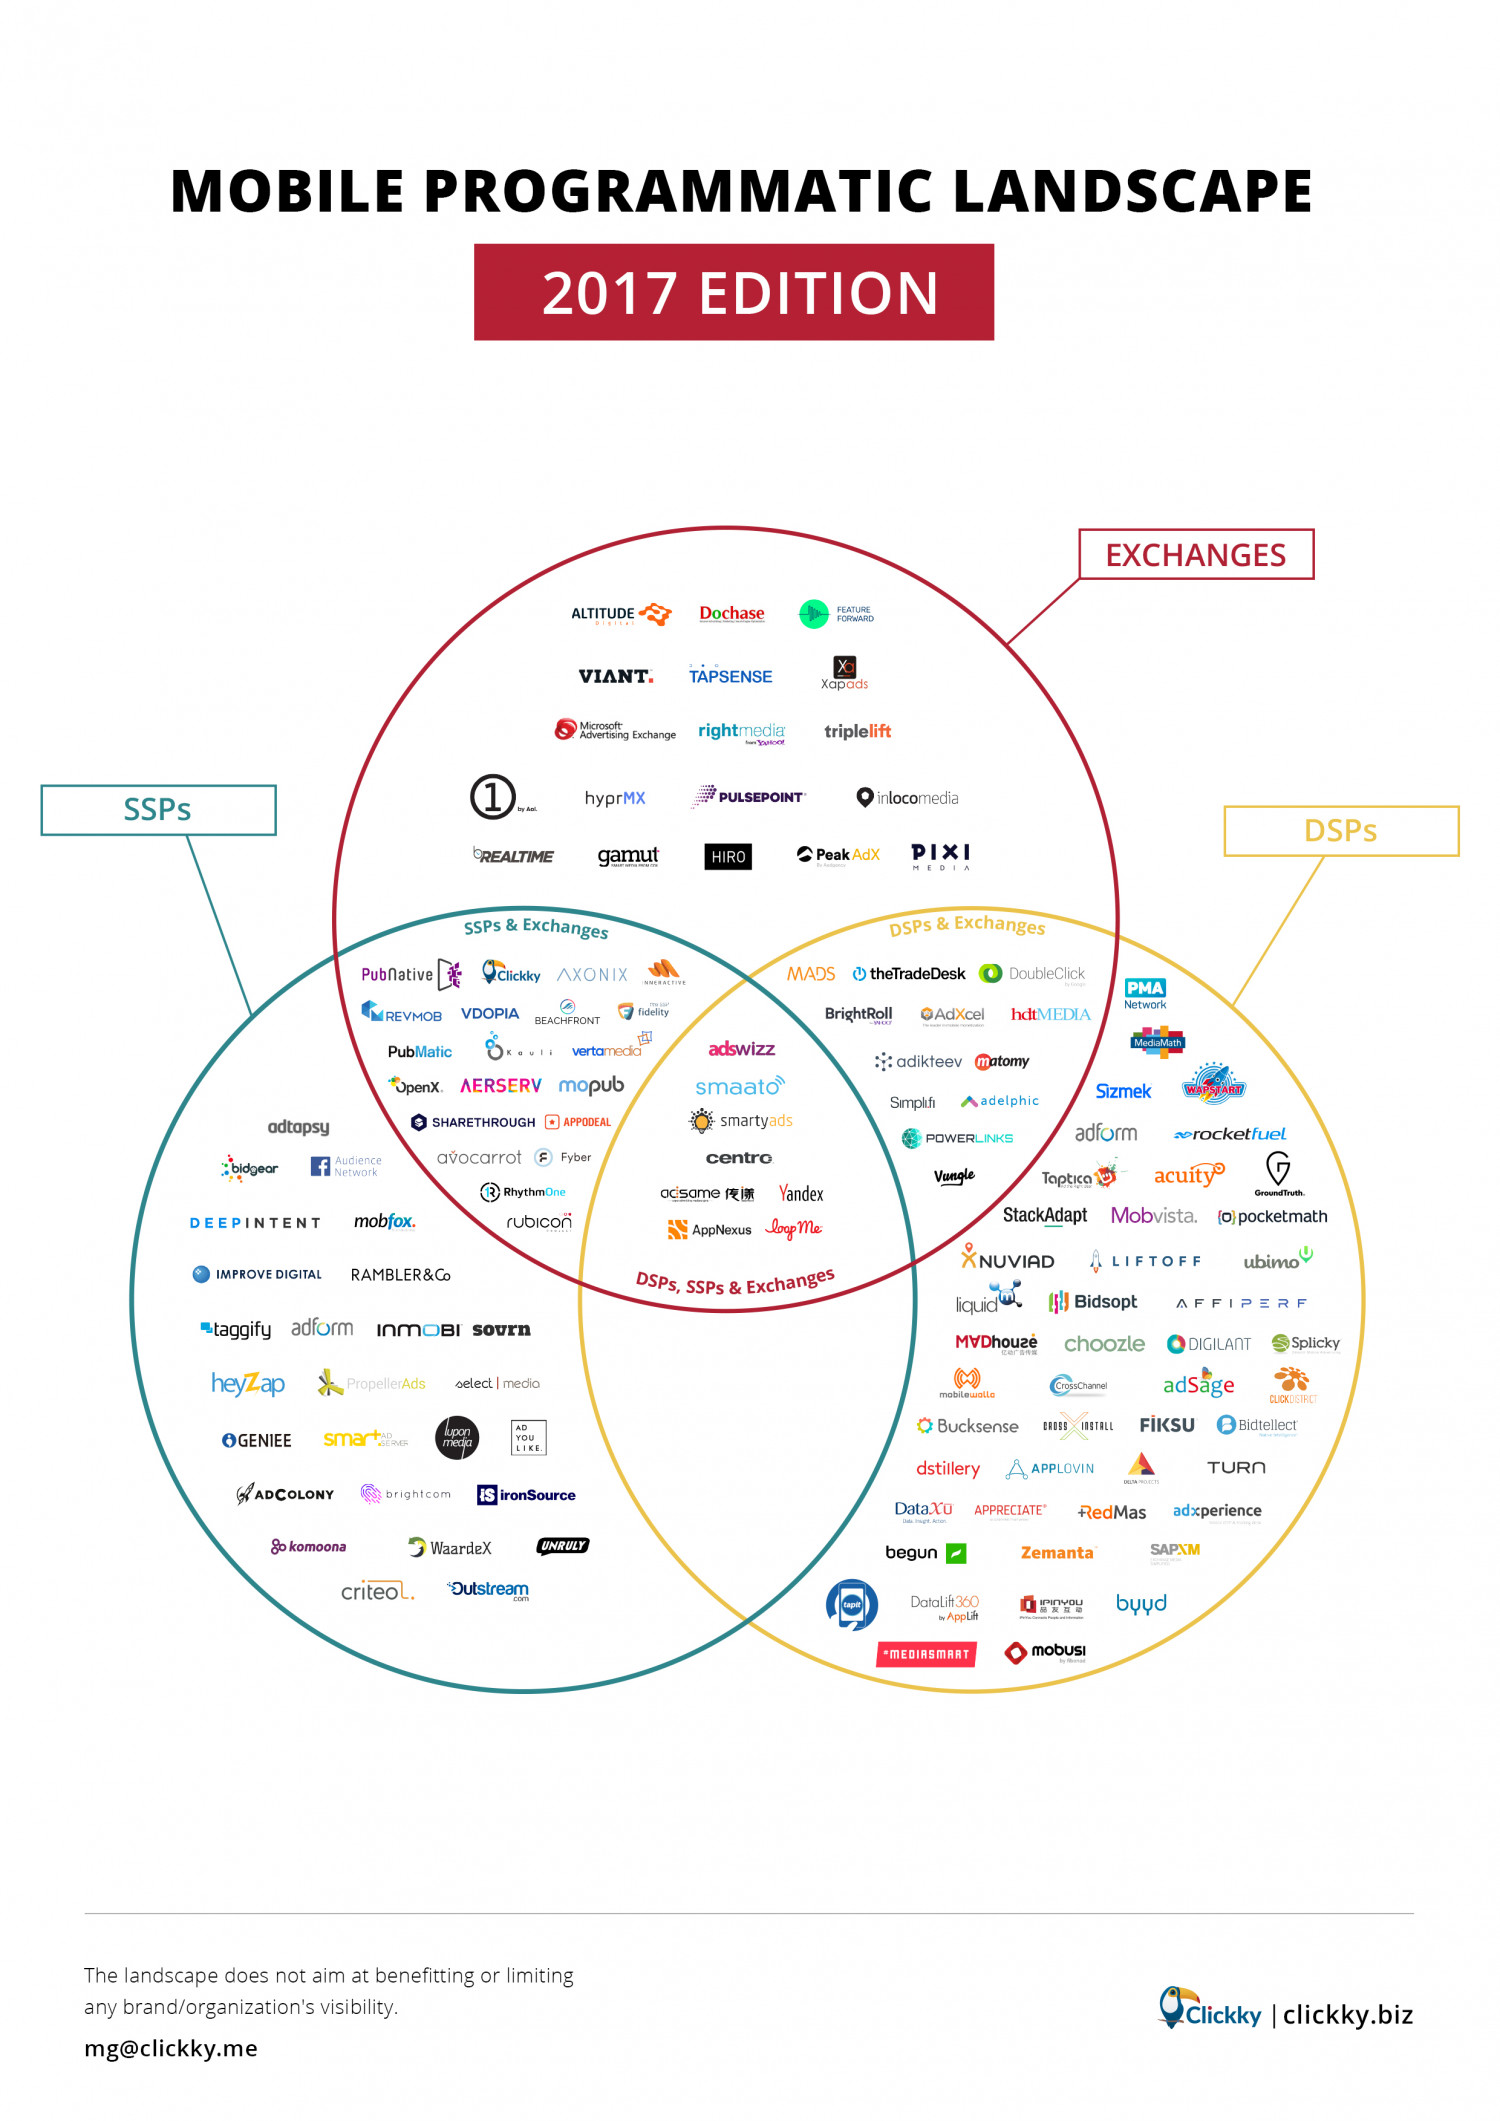 Mobile Programmatic Landscape: find key players of mobile RTB market — DSPs, SSPs, Exchanges. Infographic